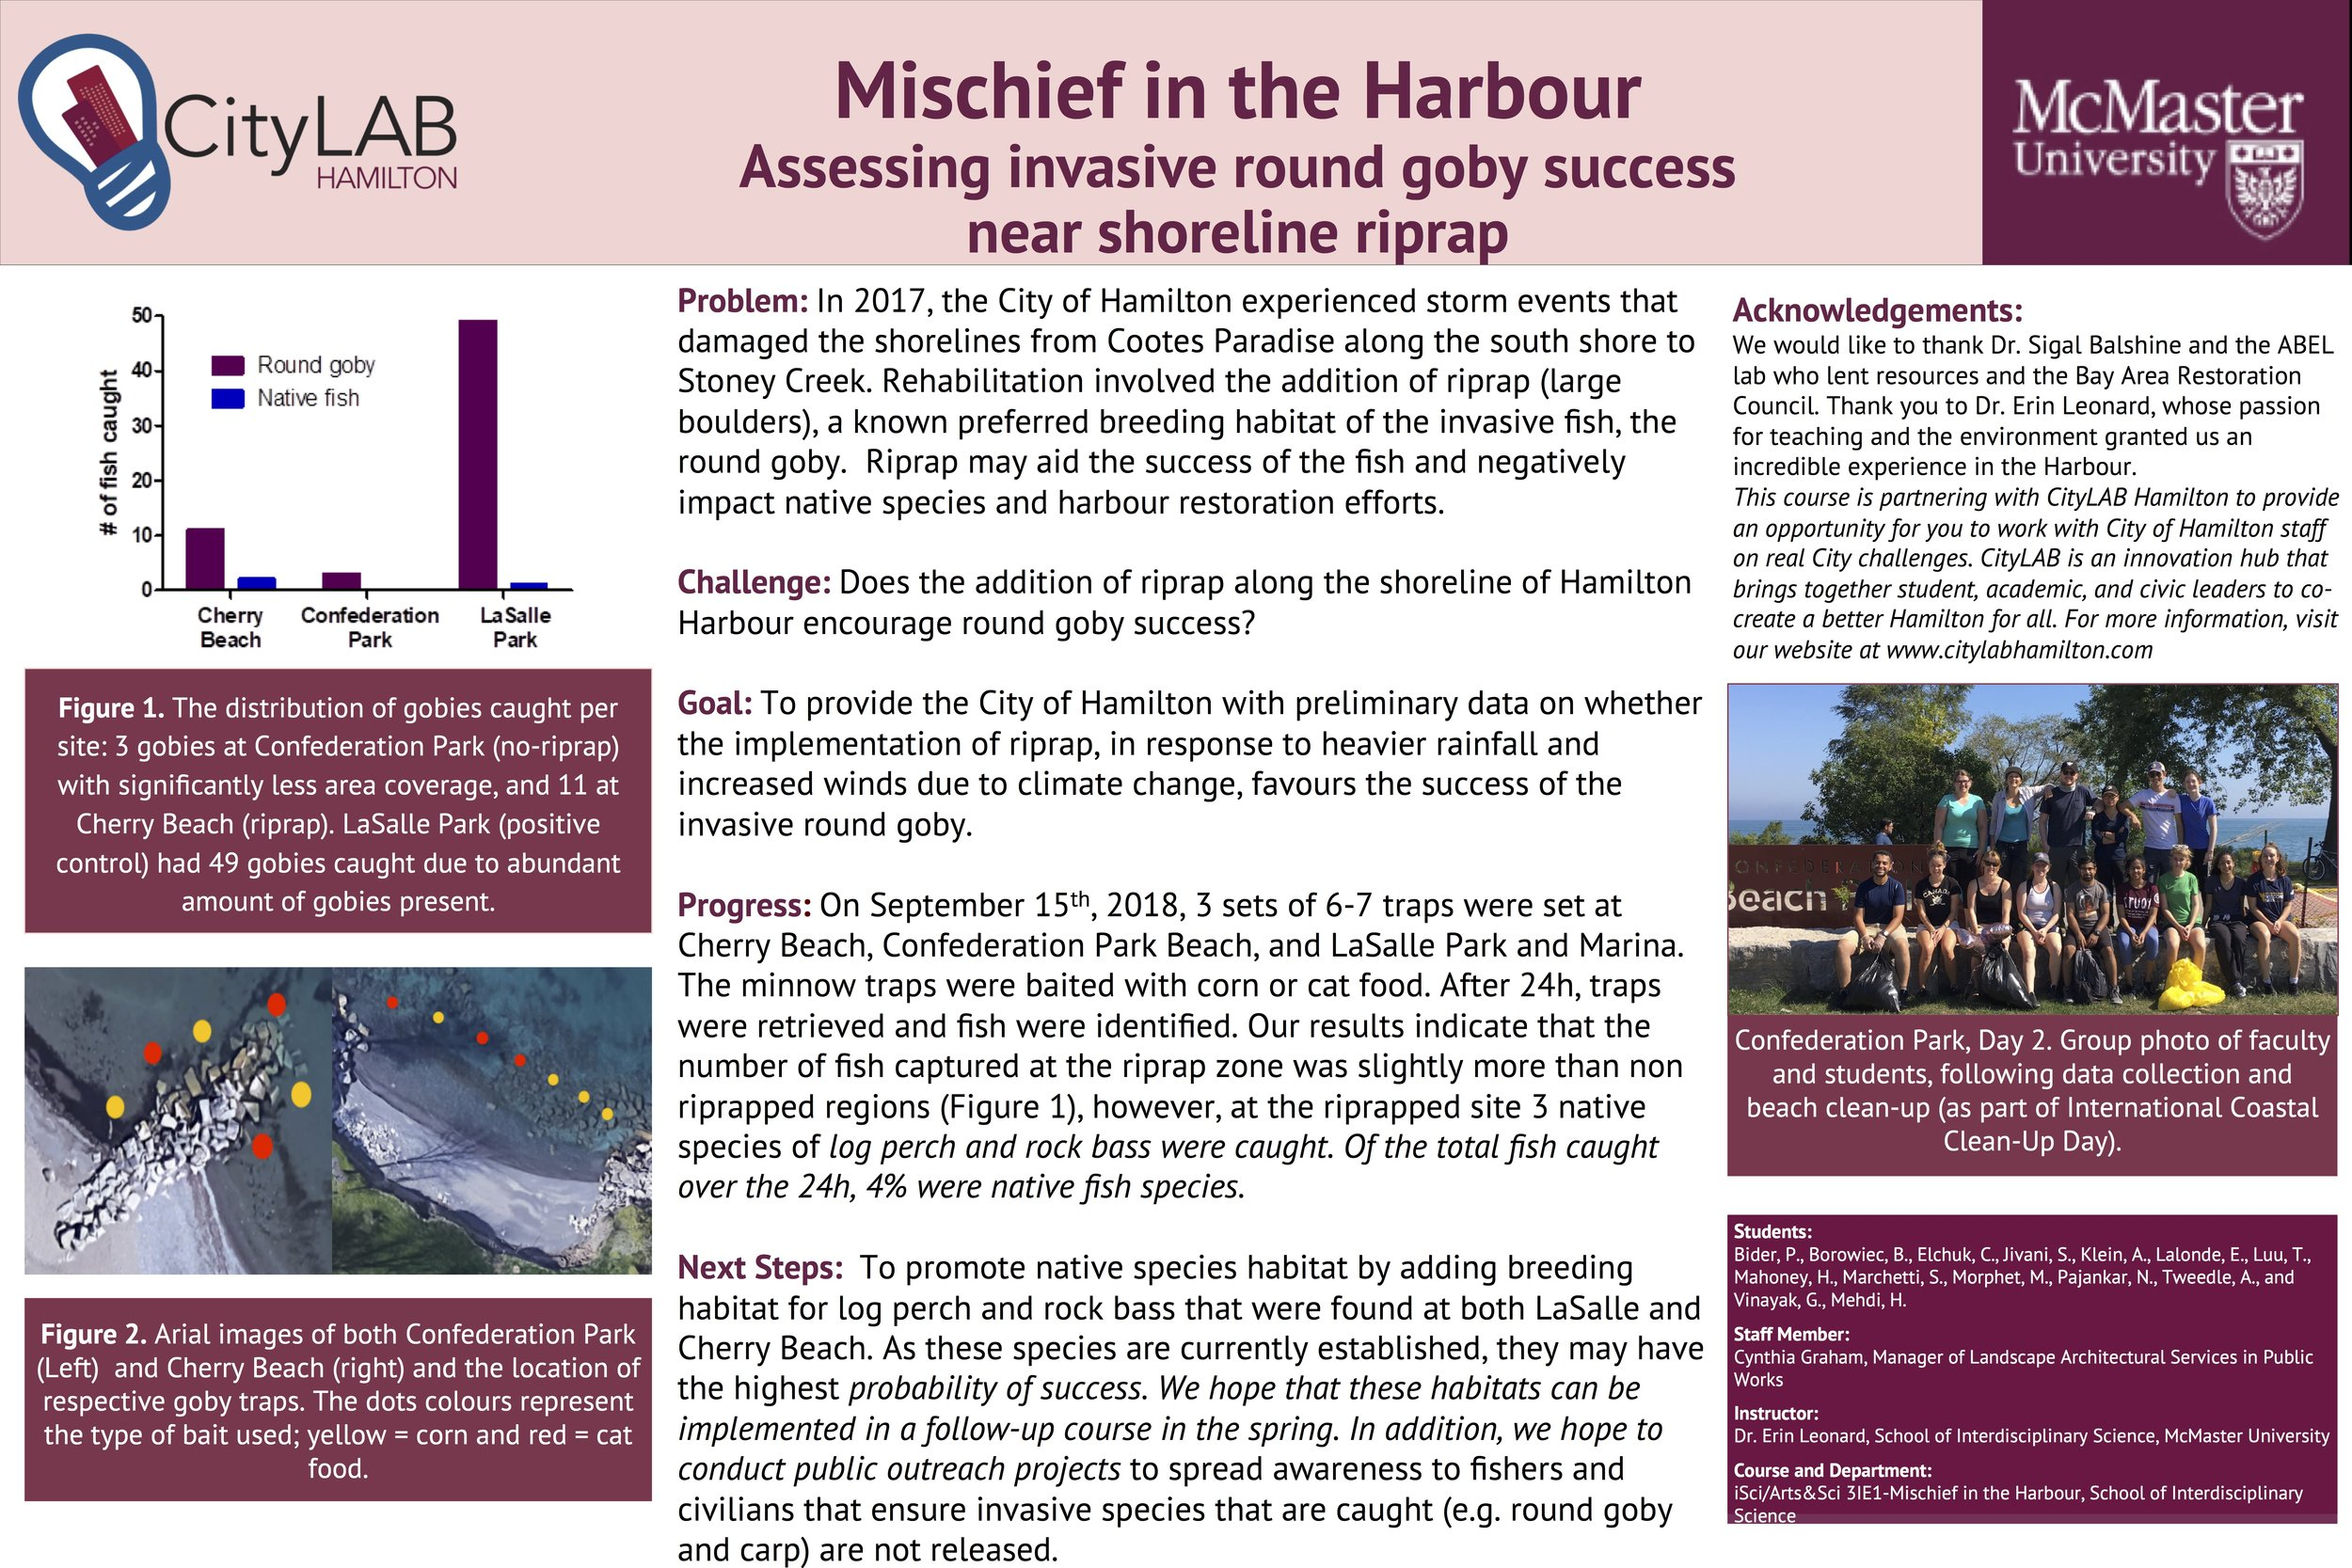 CityLAB+poster+-+Mischief+in+the+Harbour+(Nov+2018)FINAL.jpg